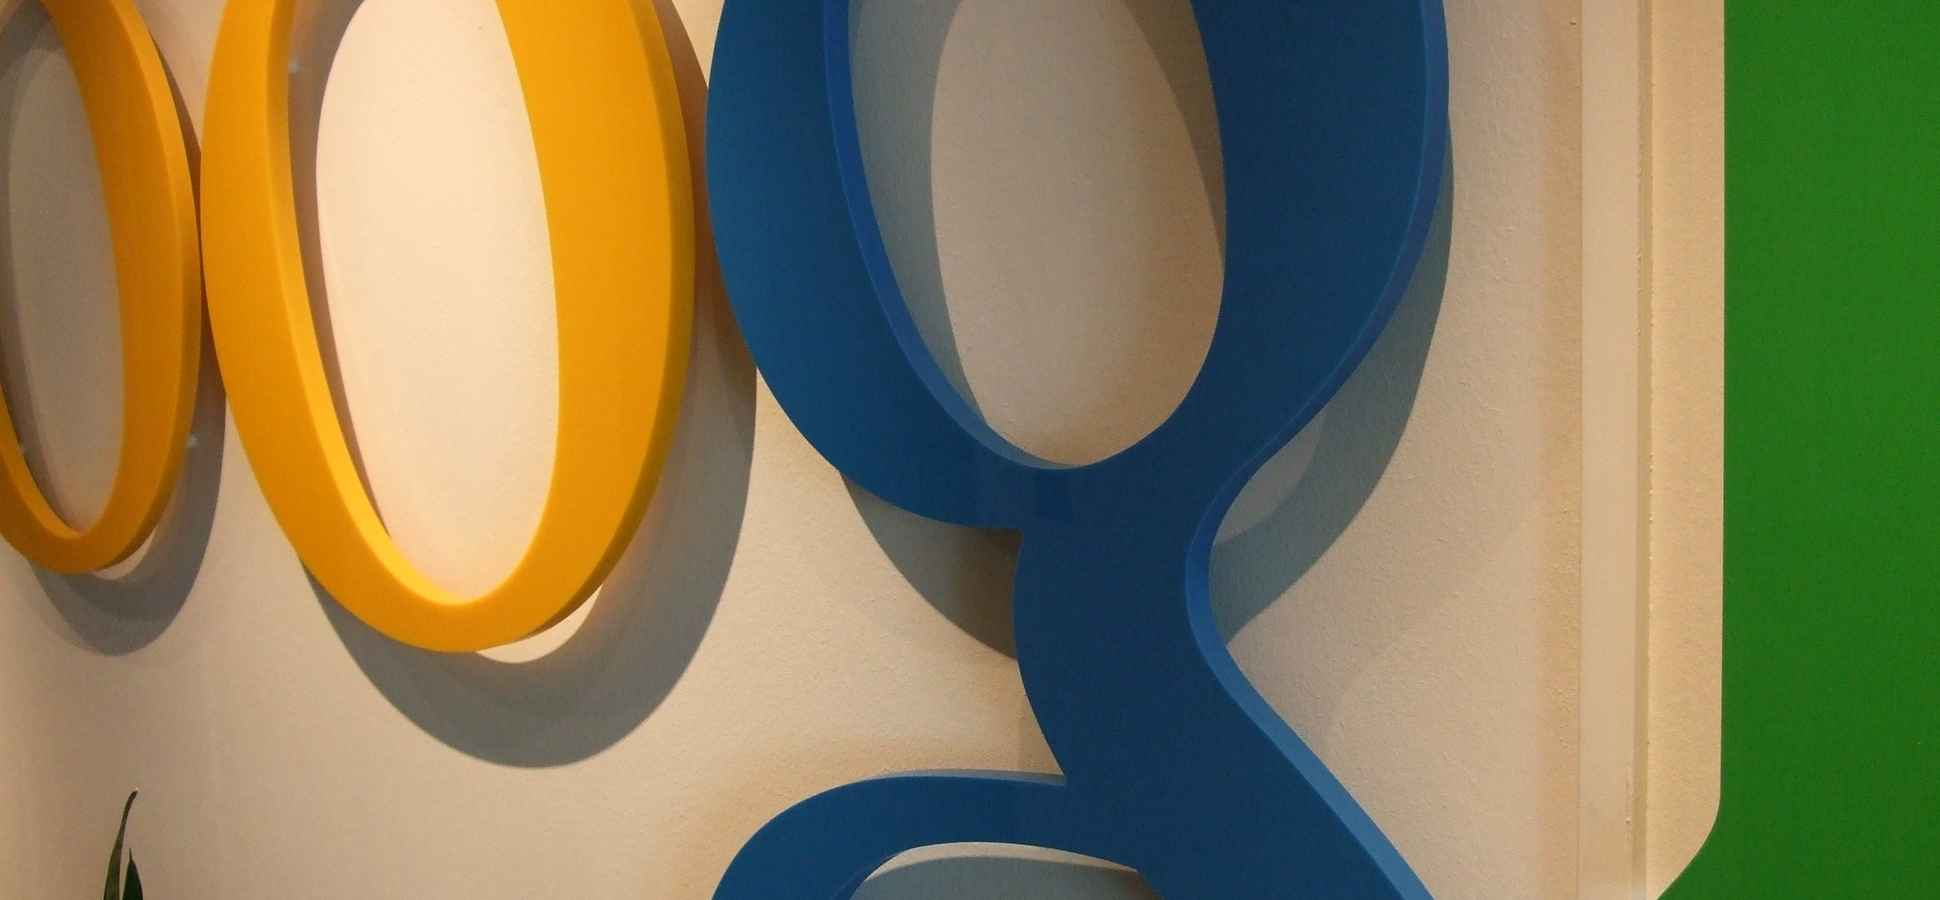 Google Has 5 Secret Hiring Principles. What Are Yours?